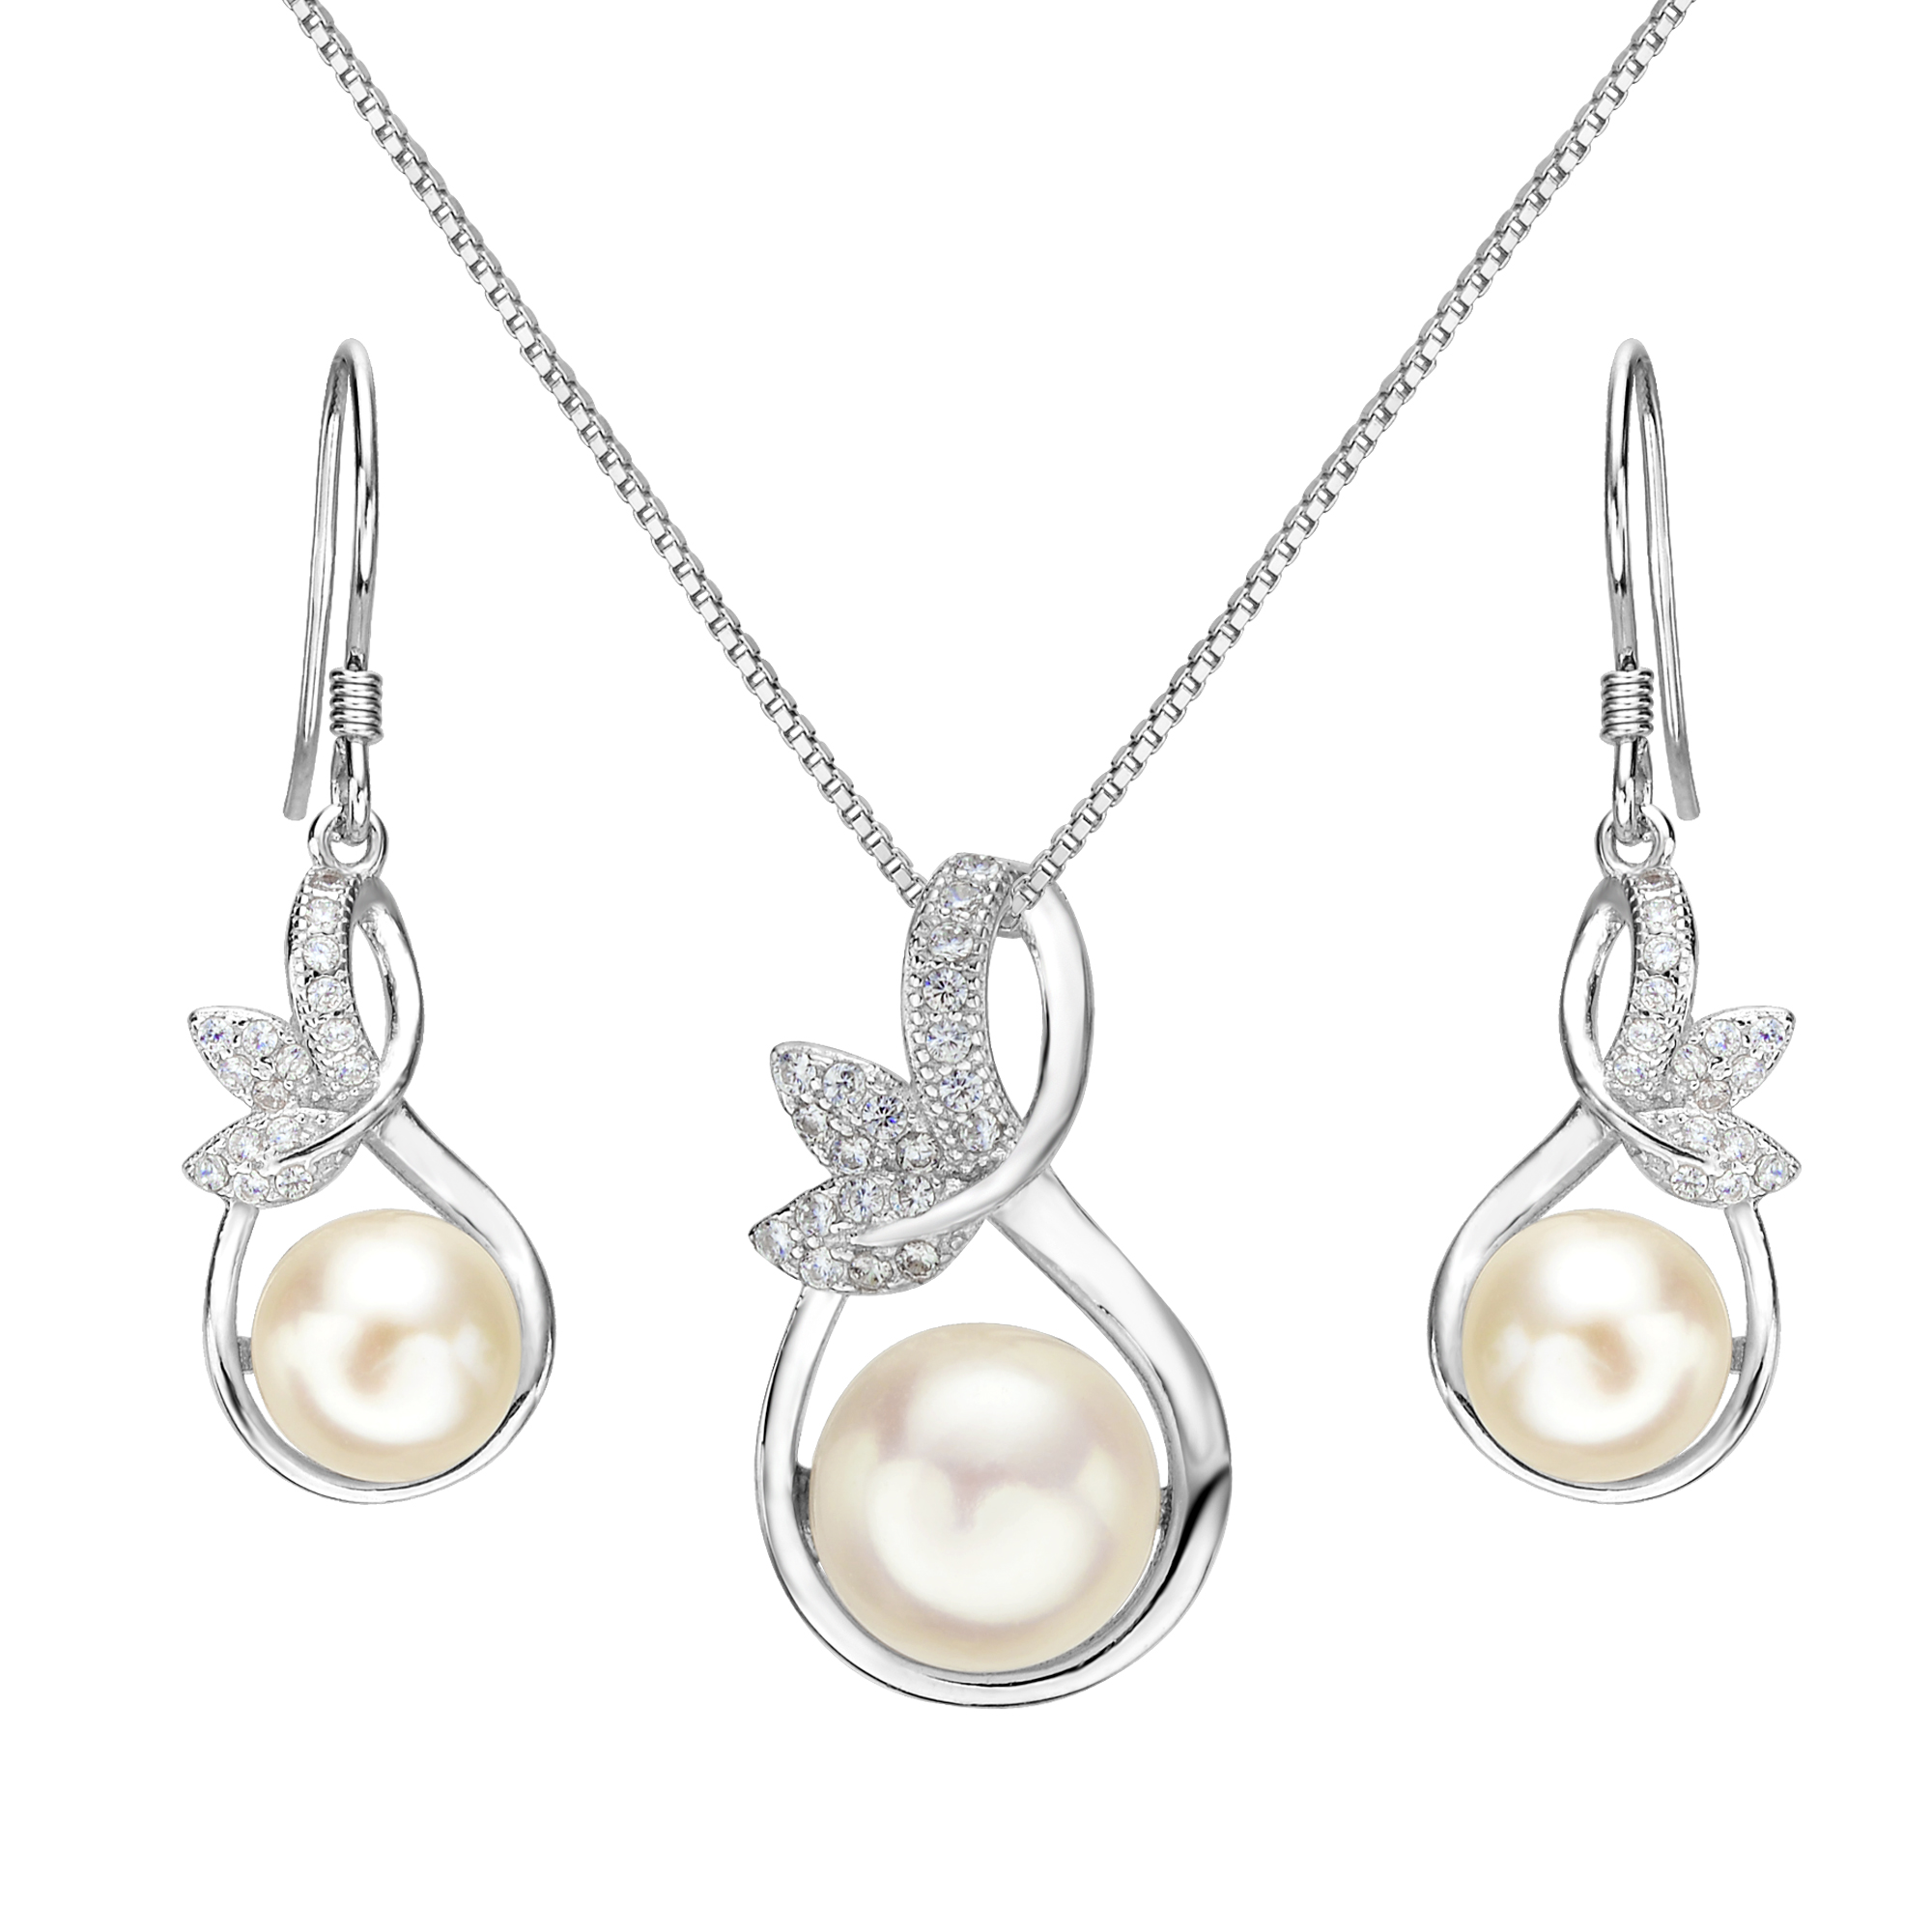 AIMO 925 Sterling Silver CZ Cream Freshwater Cultured Pearl Leaf Bridal Necklace Hook Earrings Set Clear